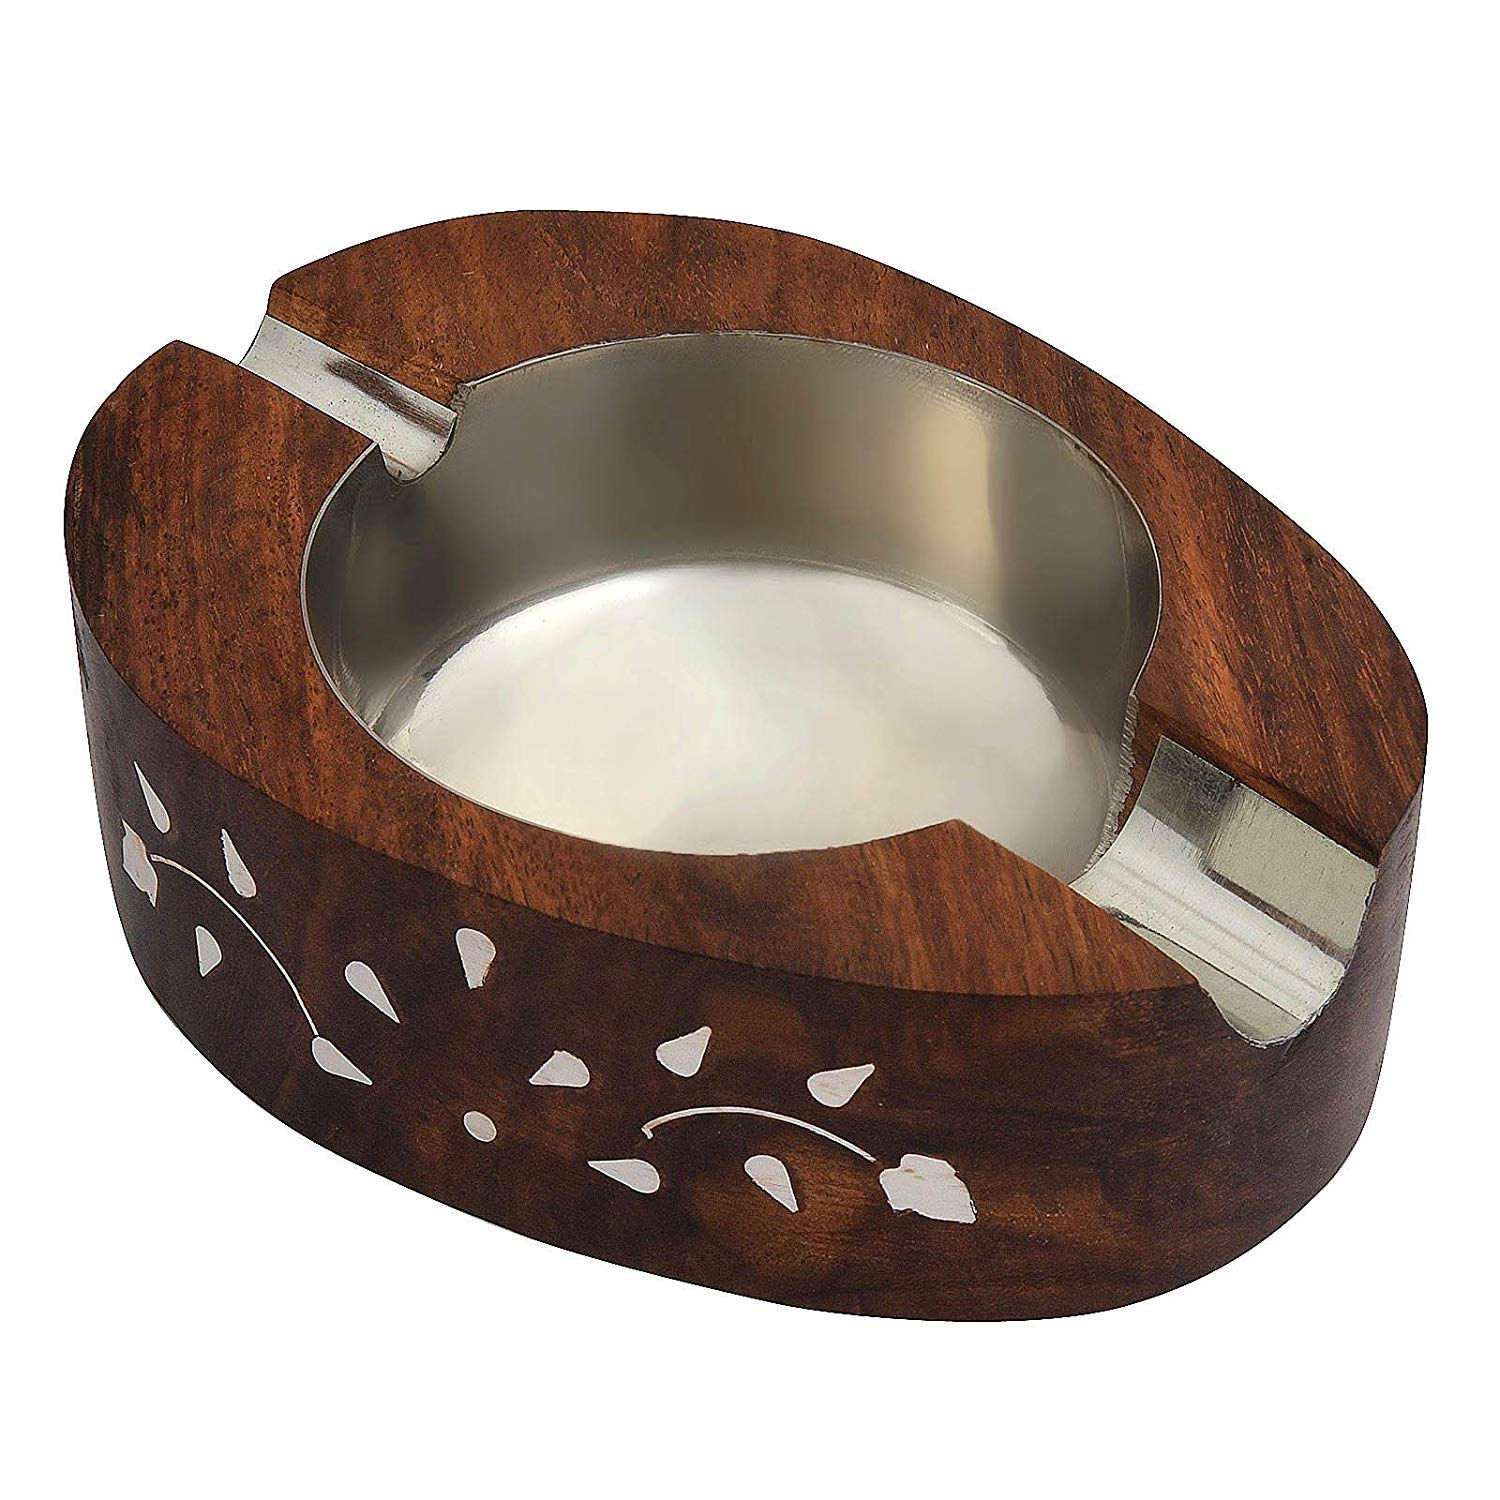 Akoca Ashtray for Cigar and Cigarettes for Home and Office